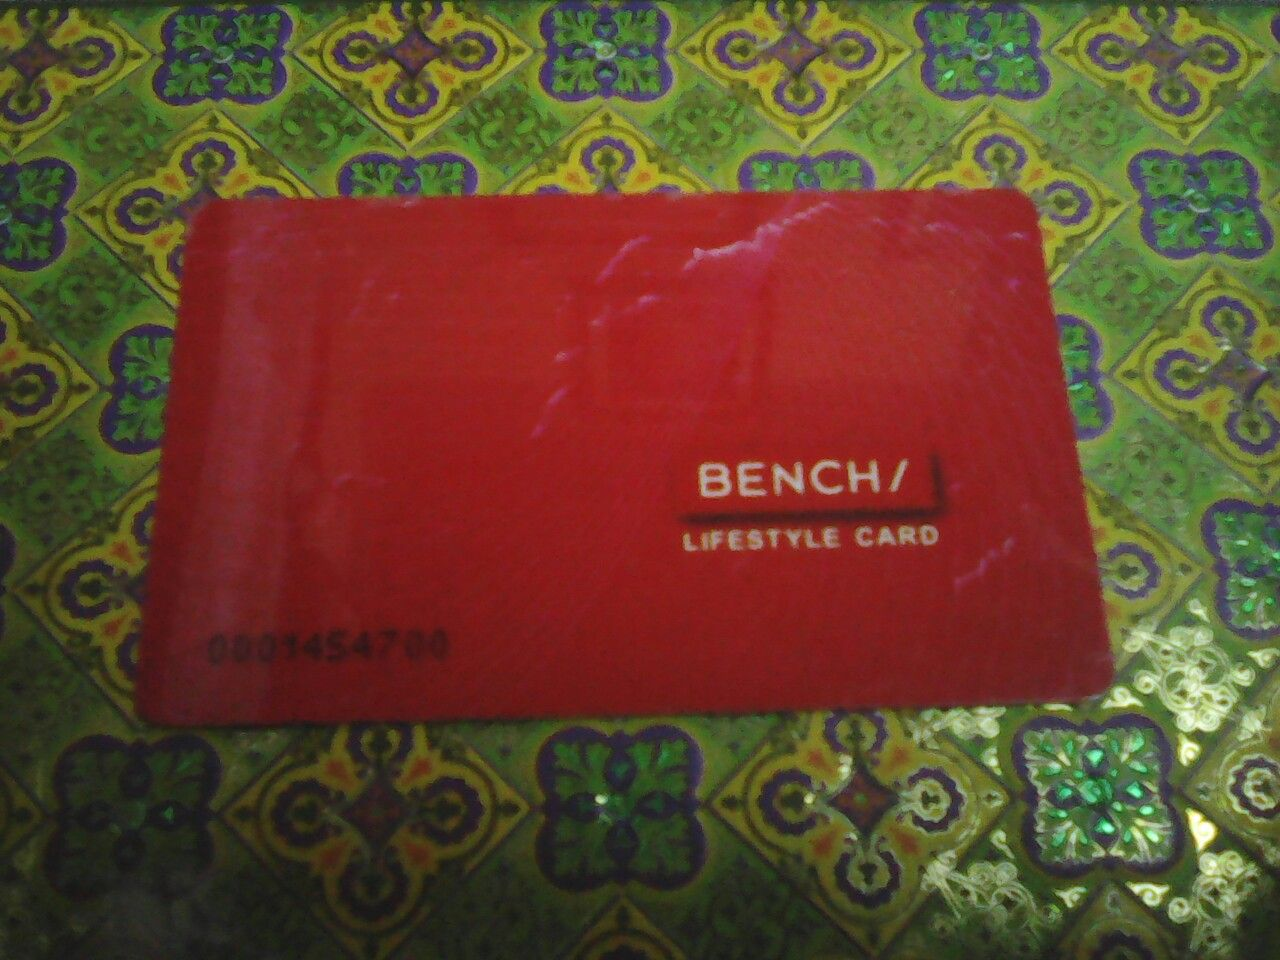 Bench Lifestyle Card.